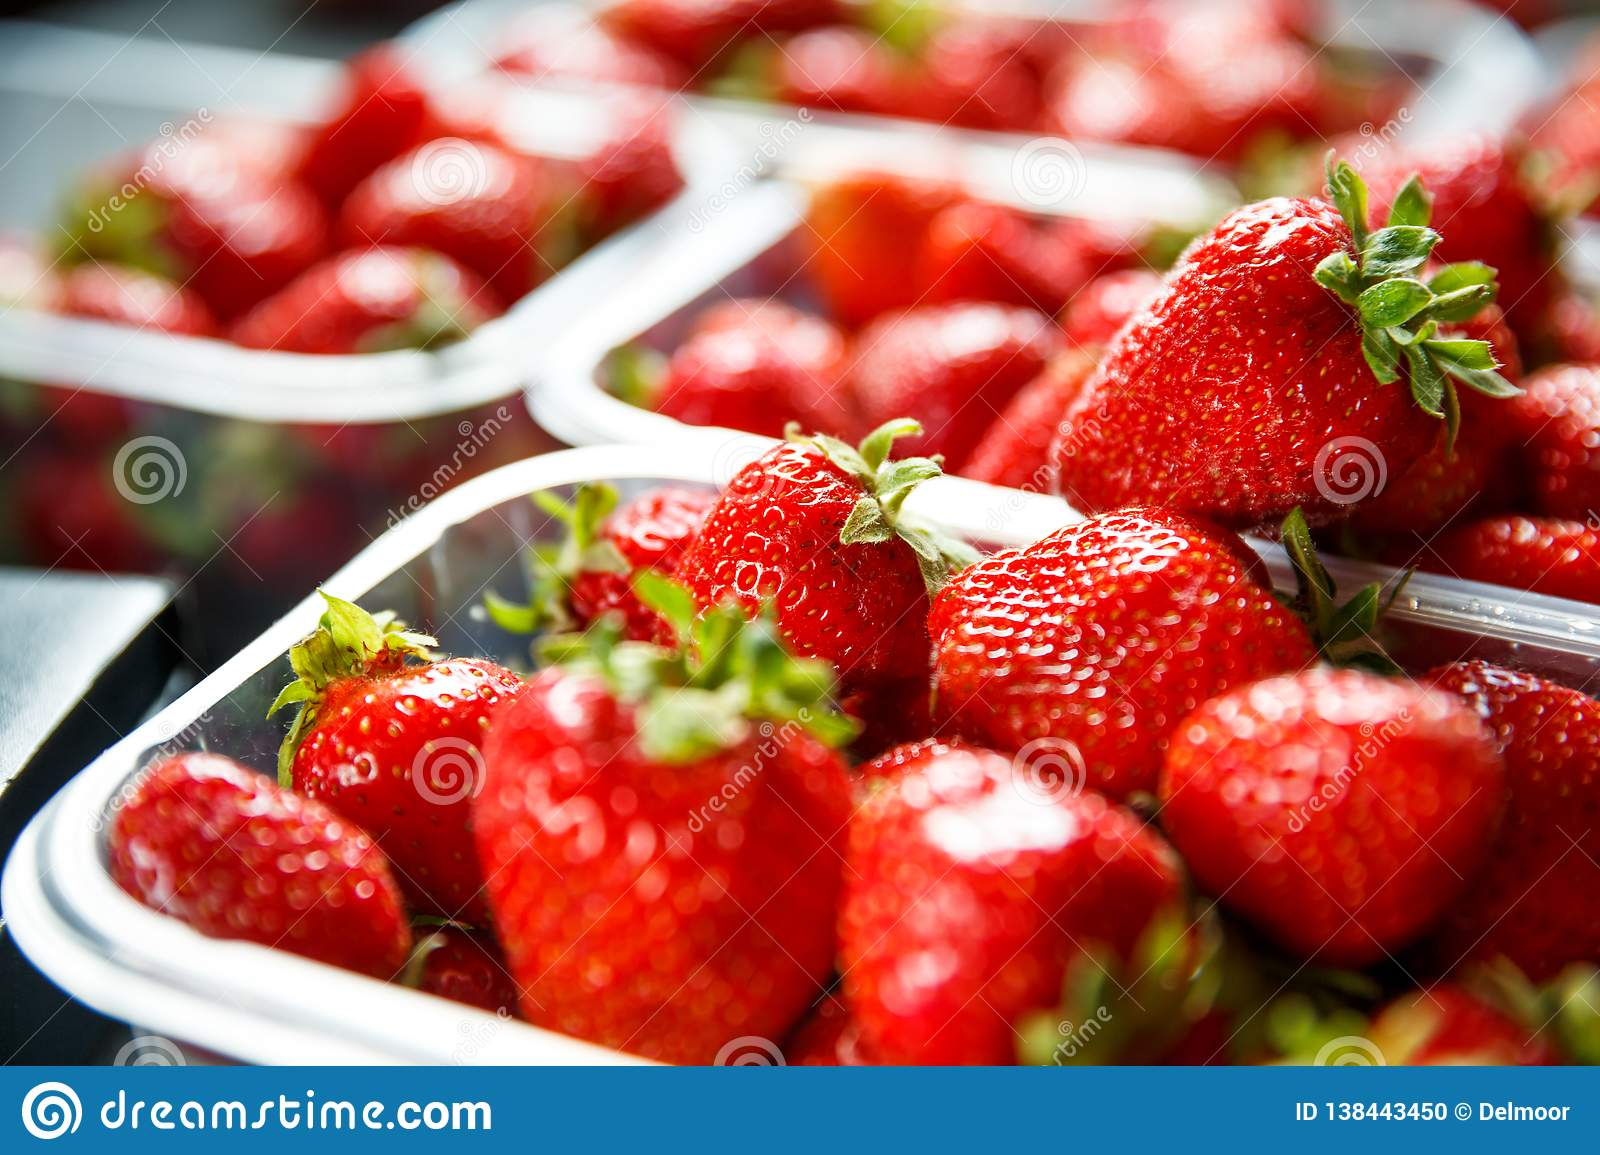 Close up of fresh red ripe strawberries in transparent plastic container boxes